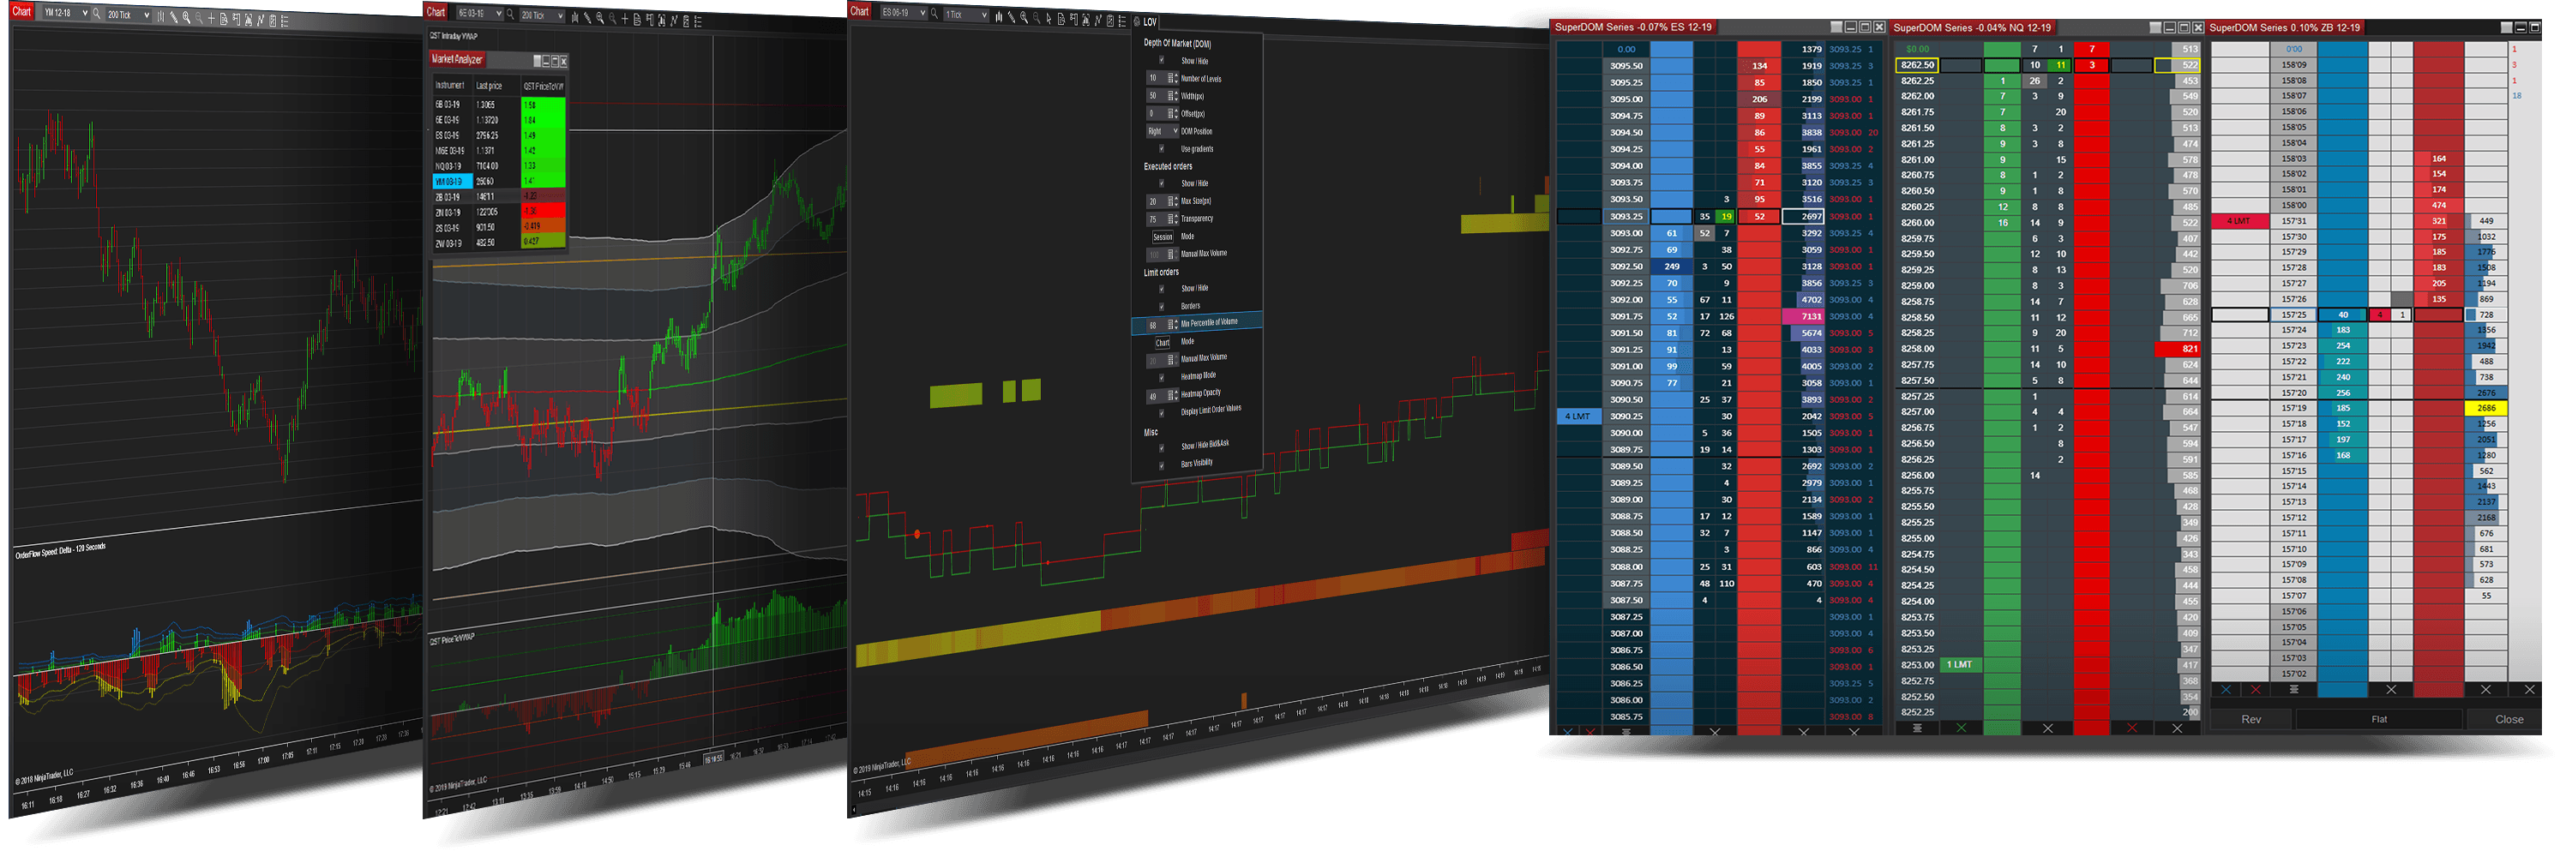 Superior Bundle Pack Get 4 Add Ons From Trading Orderflow As A Bundle And Save 45 Instead Of Buying The Add Ons Individually Exp In 2021 Bundle Pack Bundles Superior